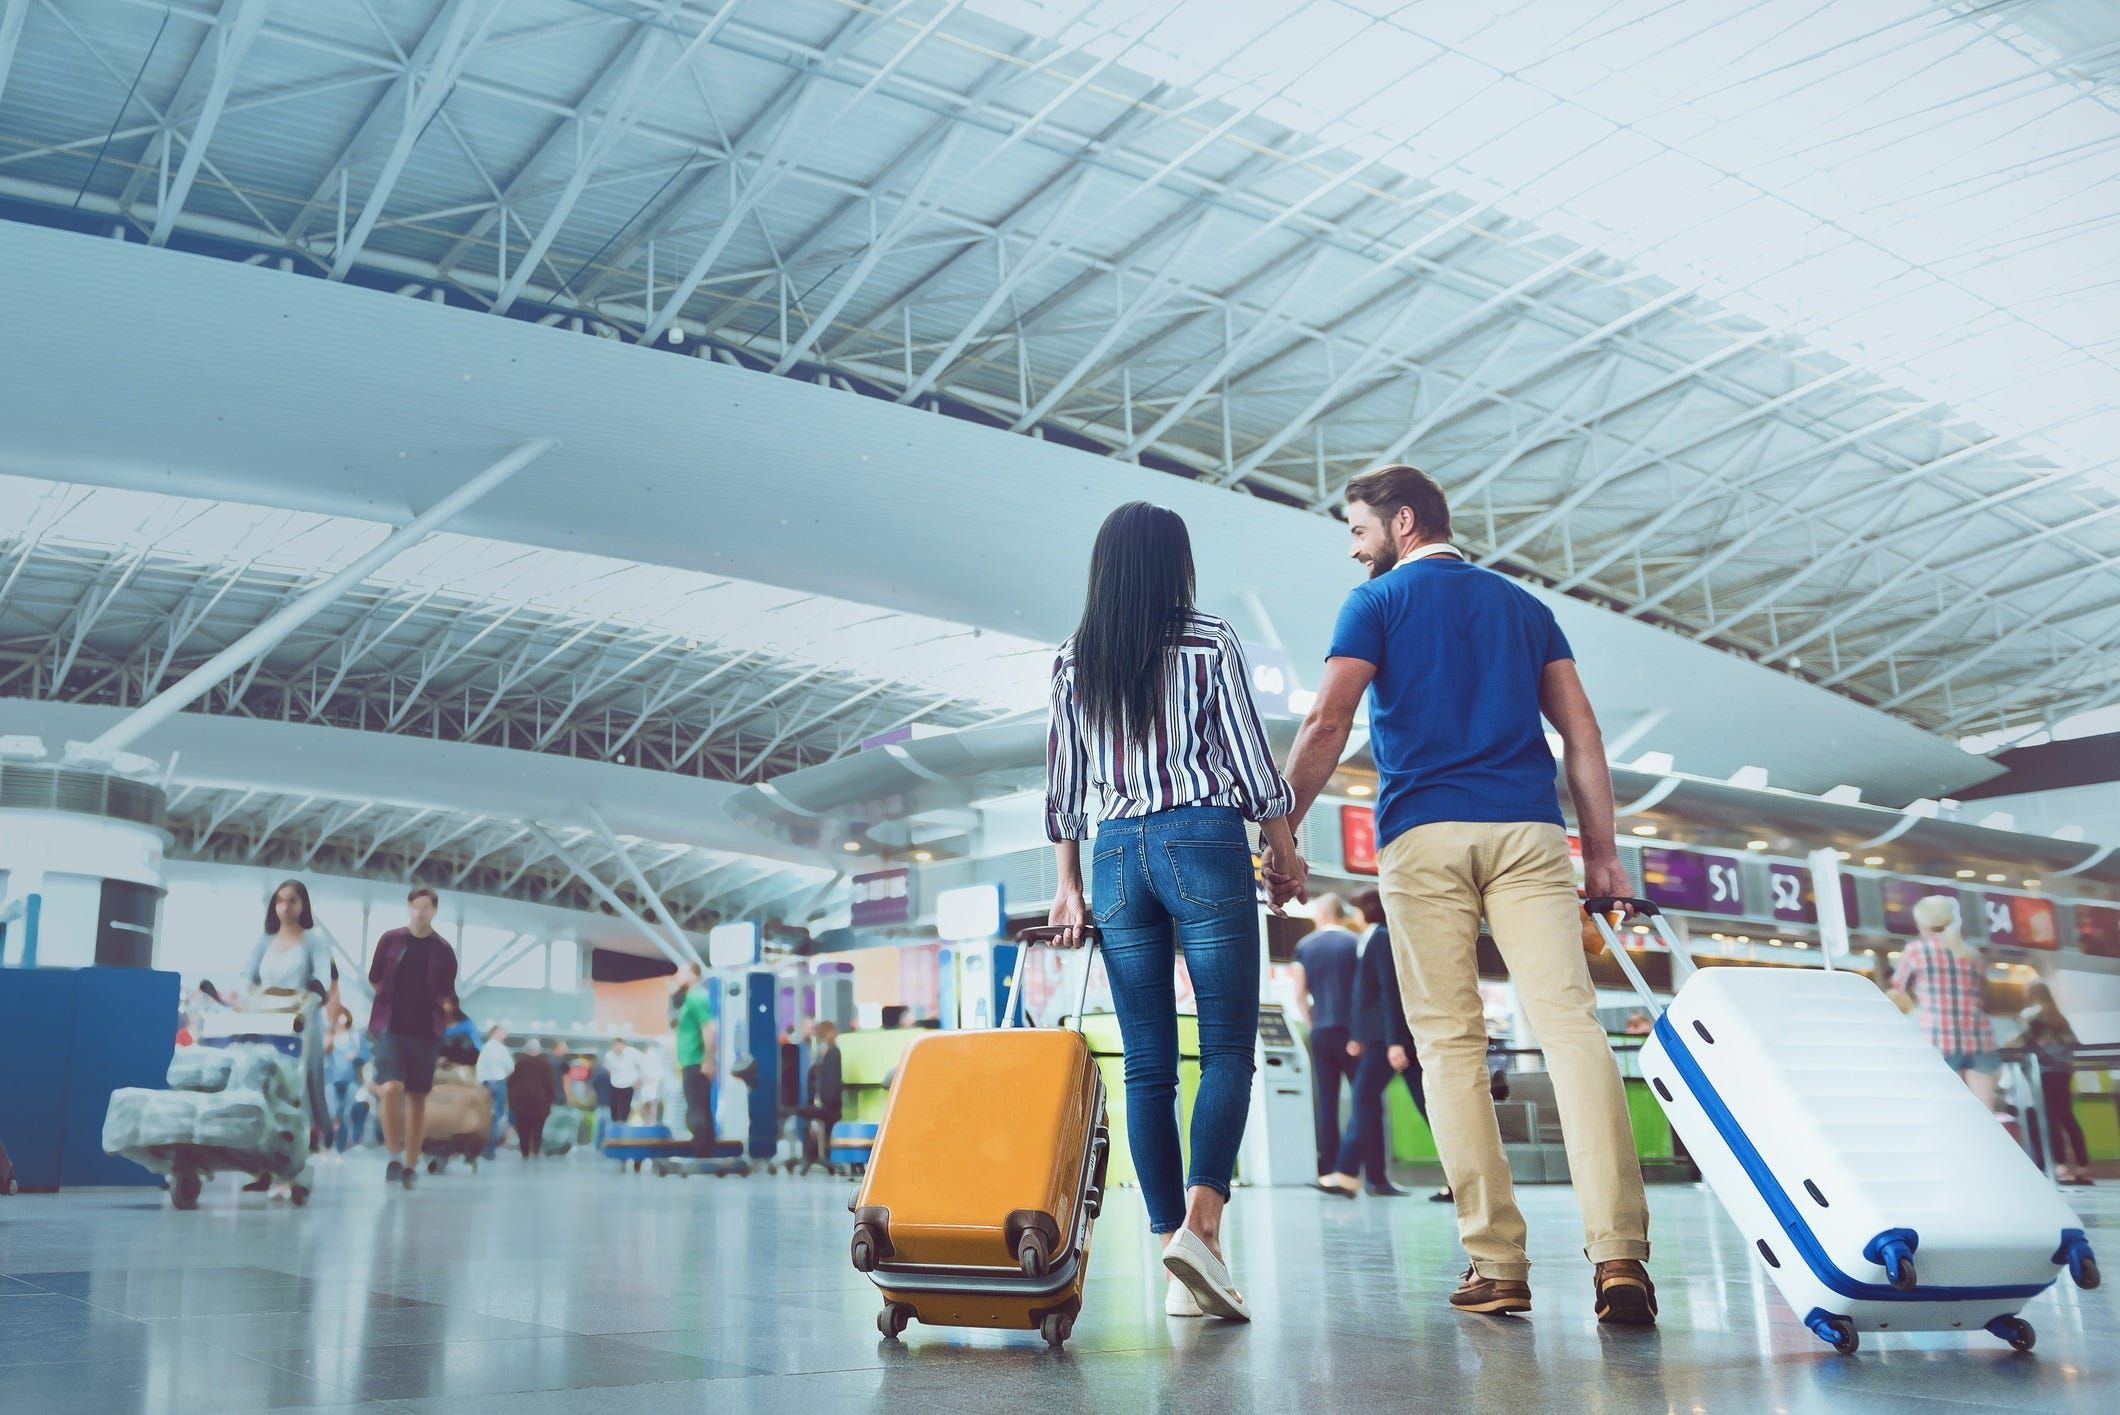 10Best Ranking the best frequent flyer programs of 2019